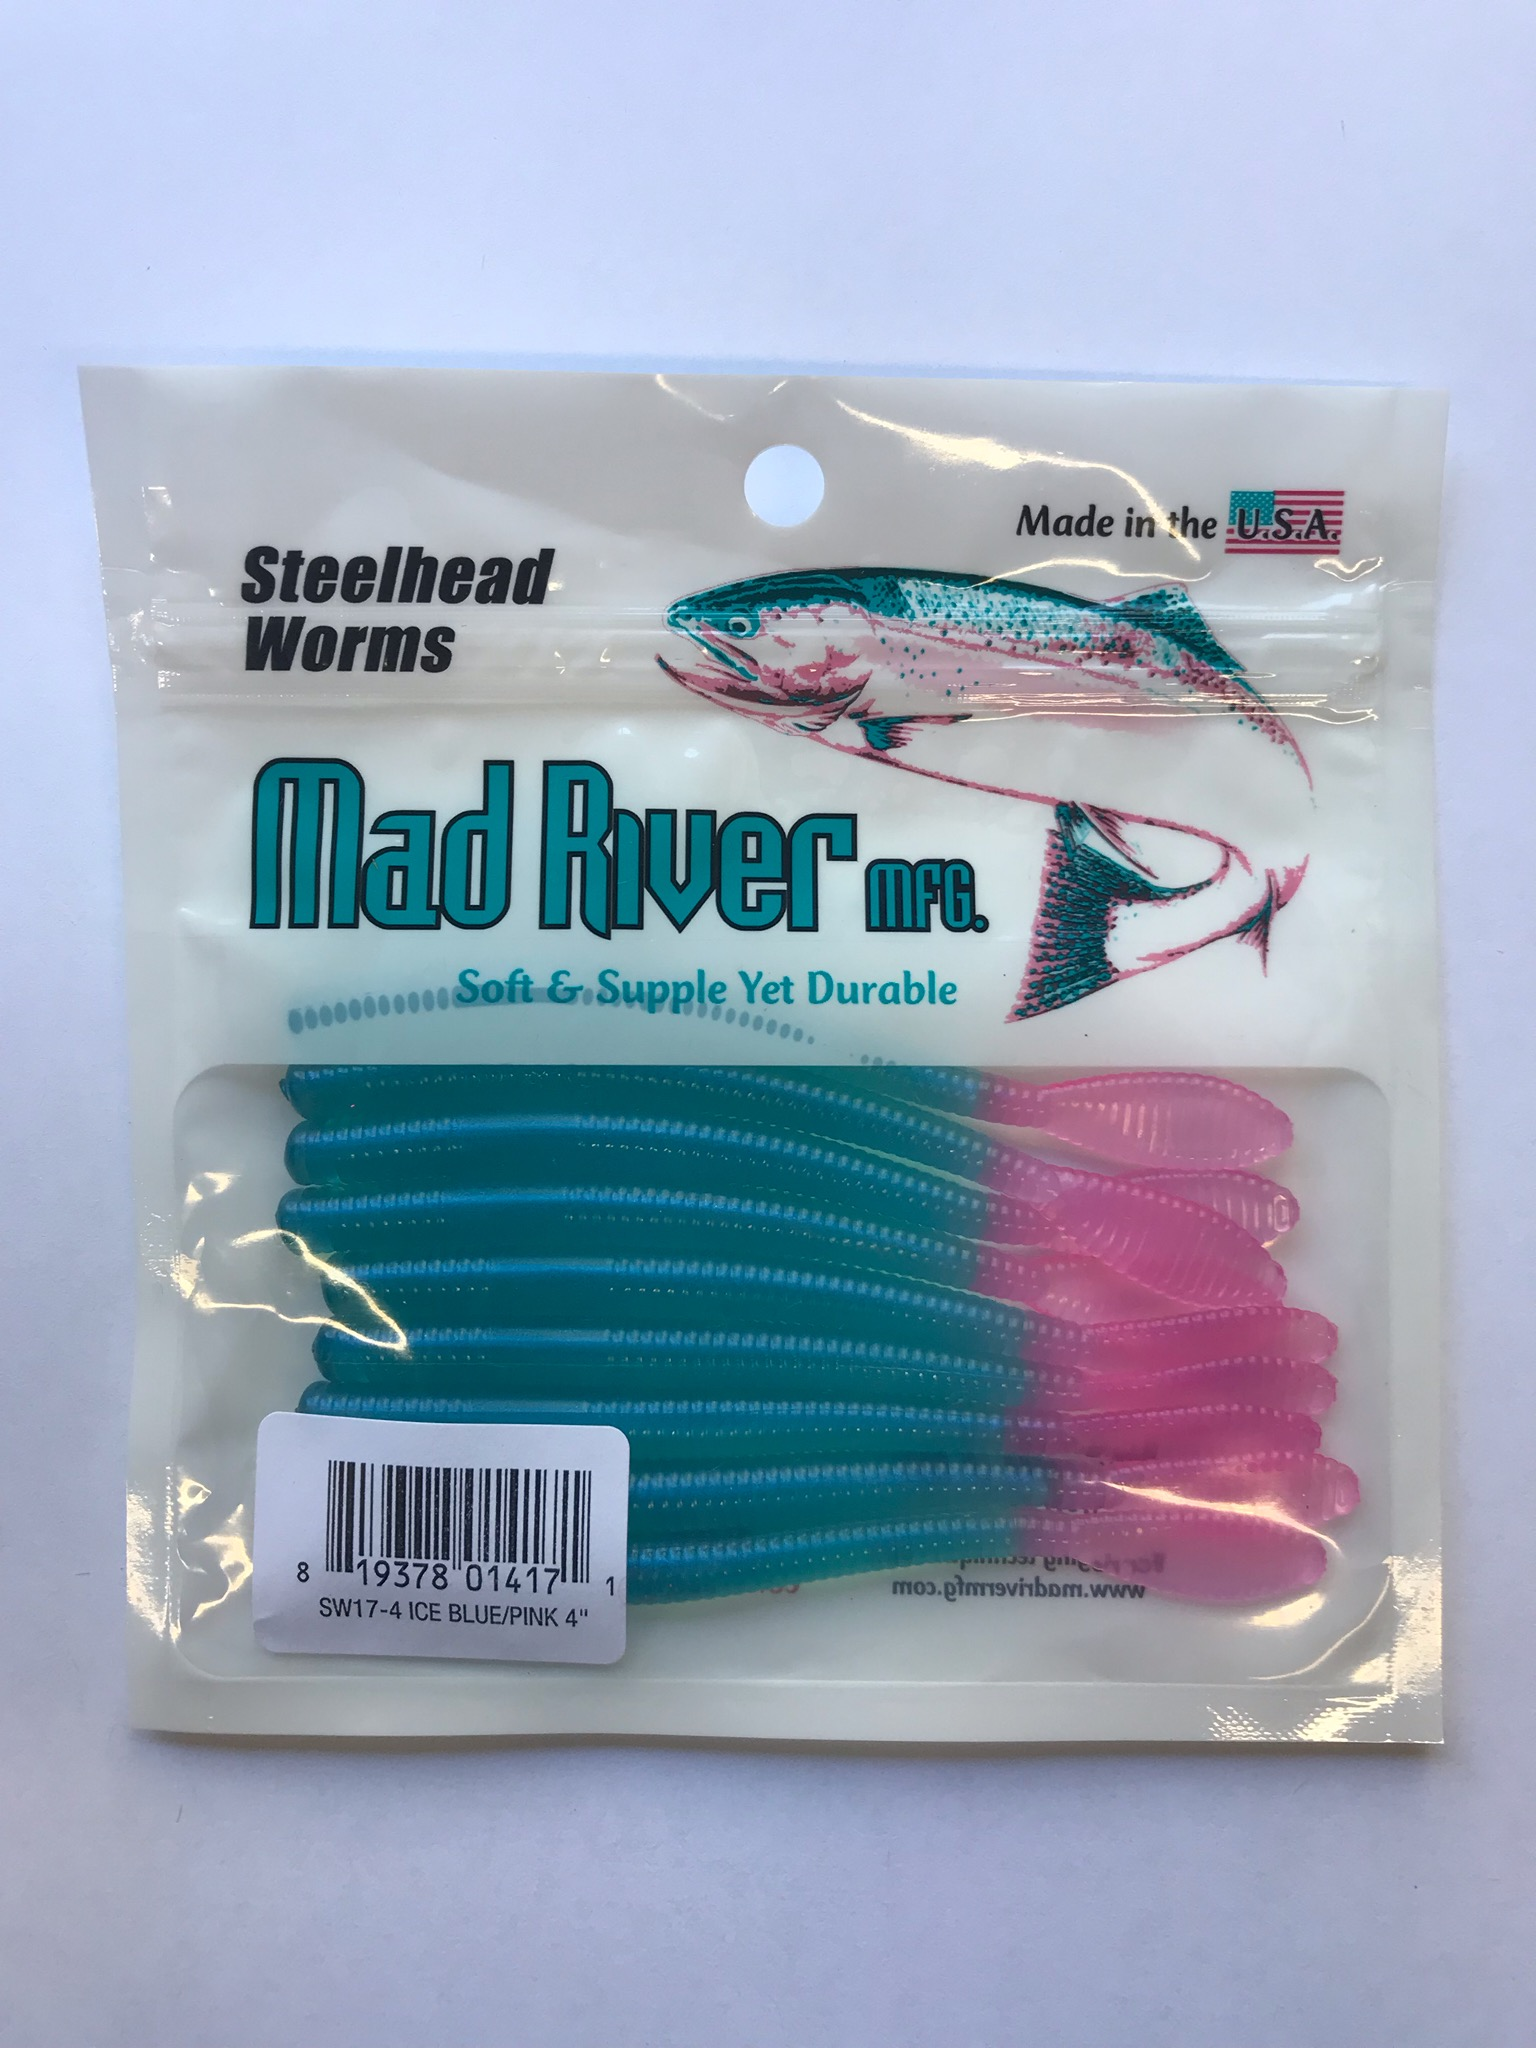 Steelhead Worms: Ice Blue/Nail polish Tail